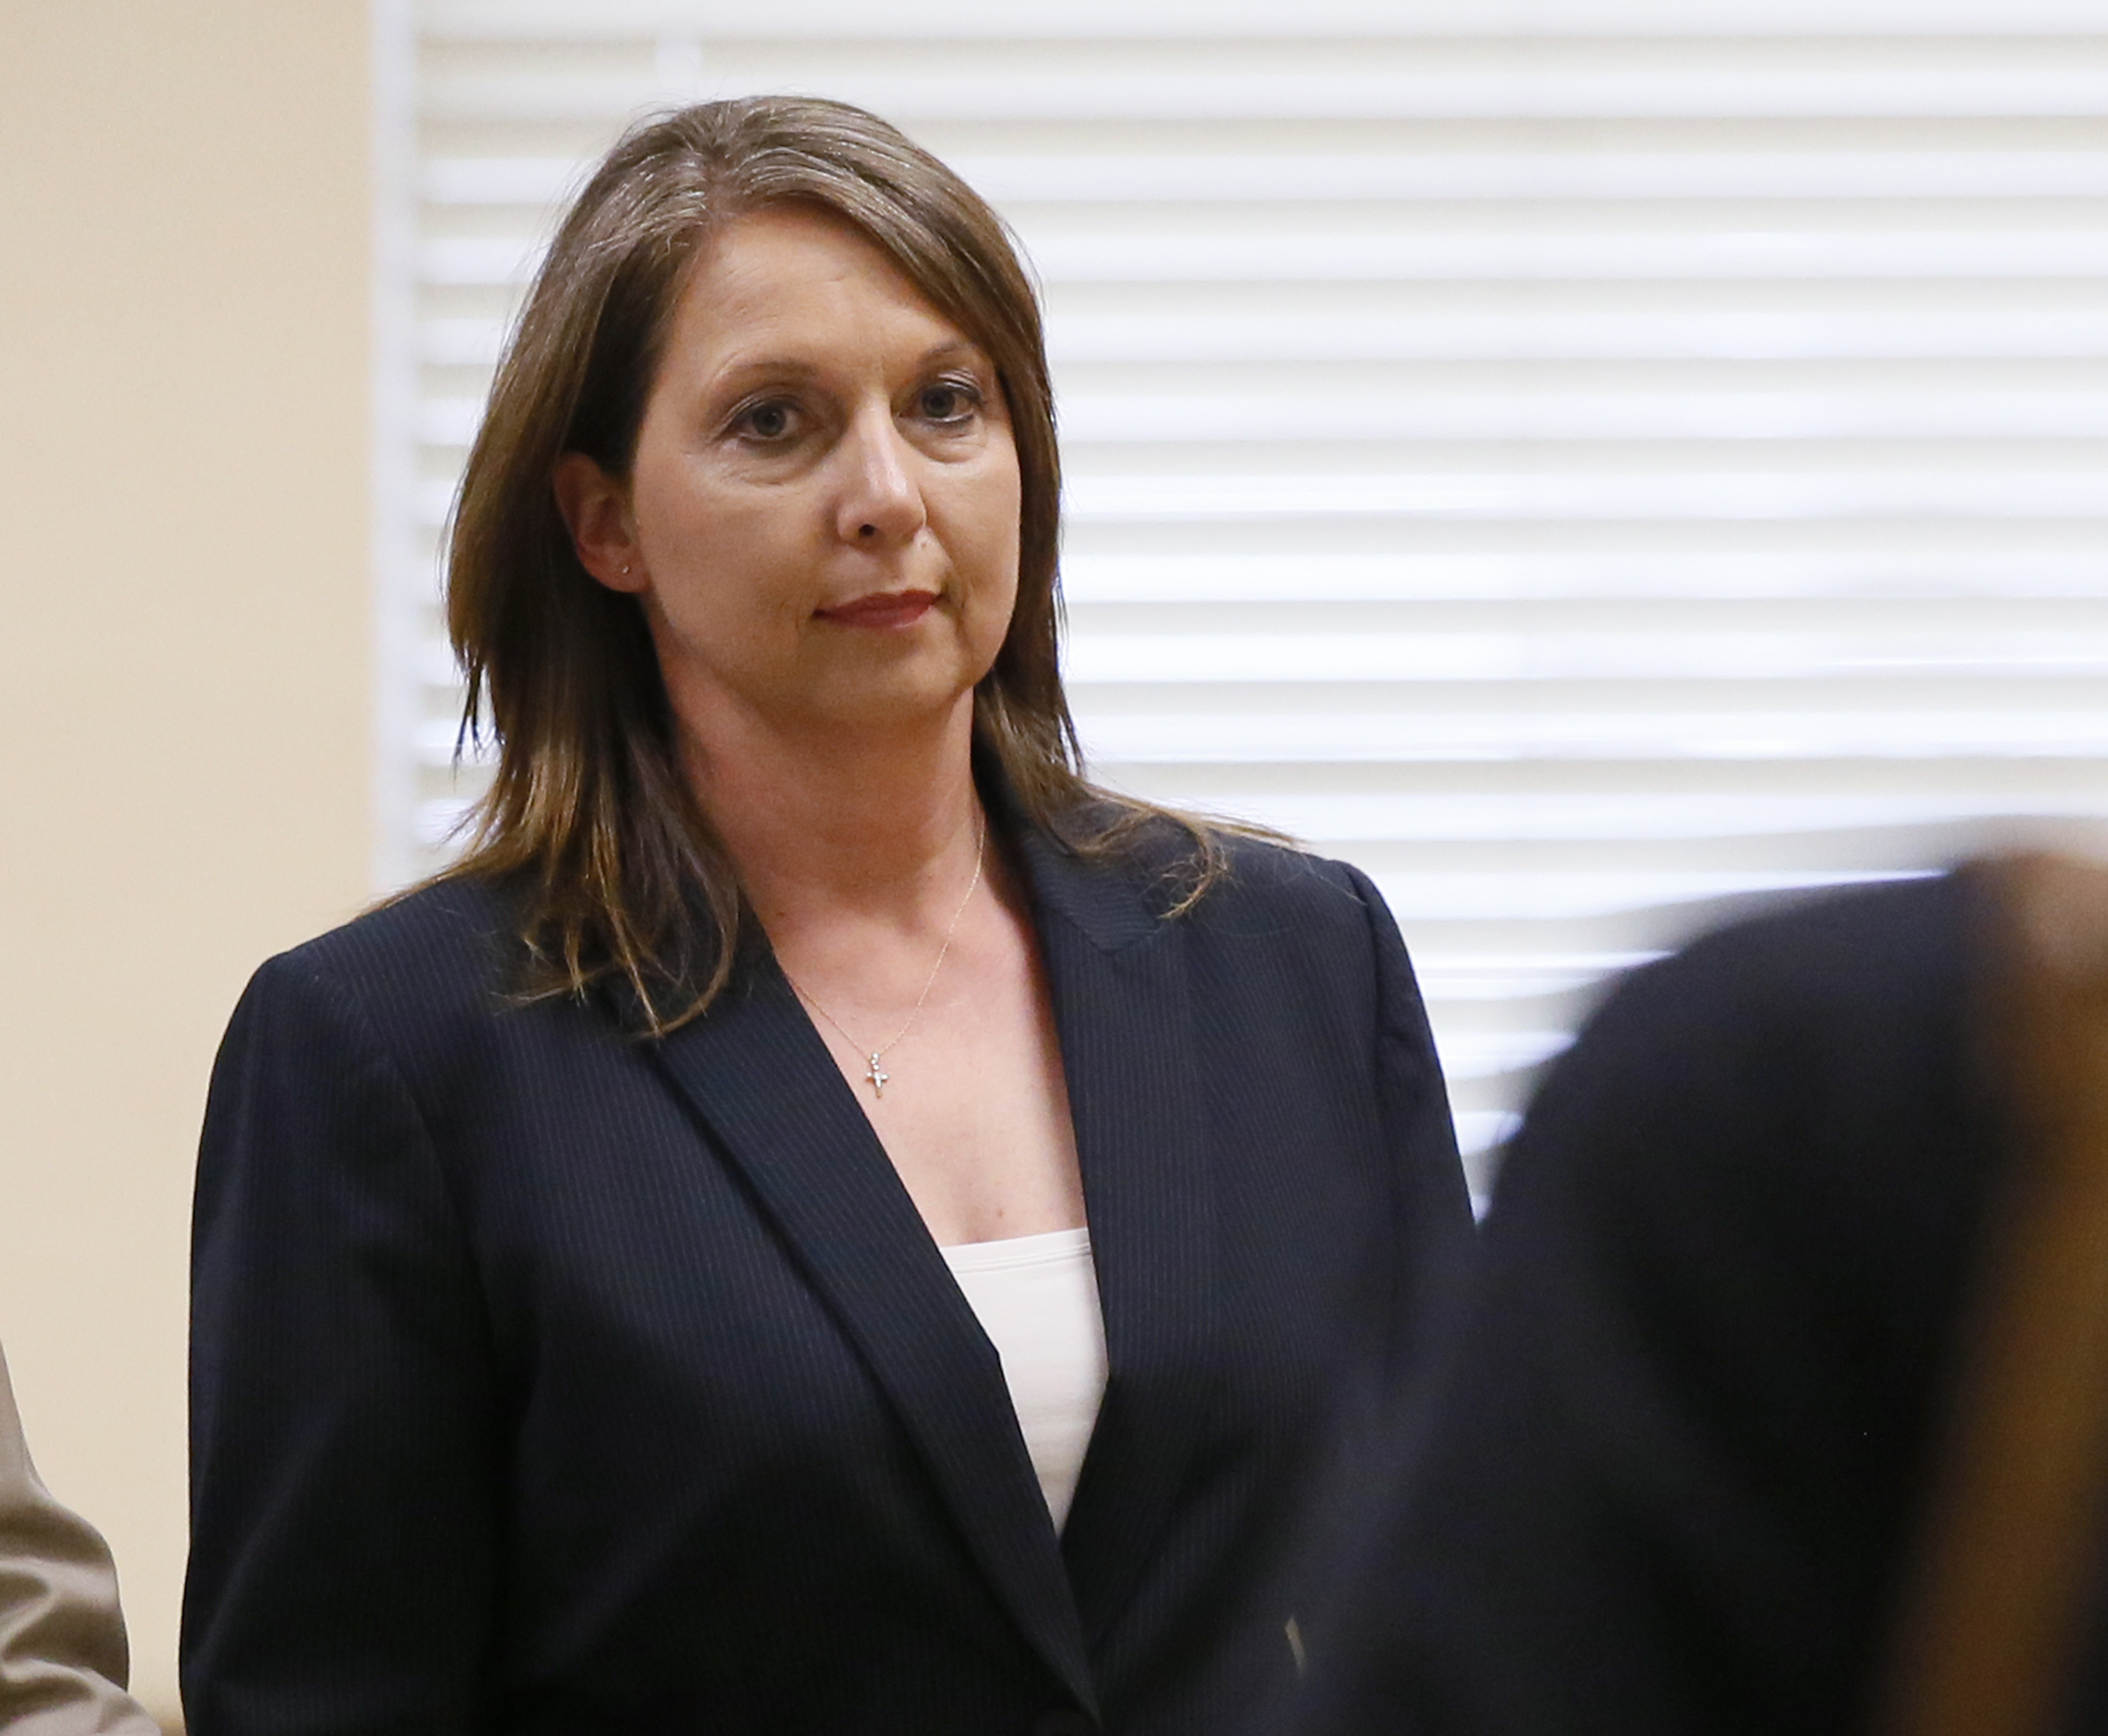 Betty Shelby leaves the courtroom following testimony in her trial in Tulsa, Okla. on May 12, 2017.